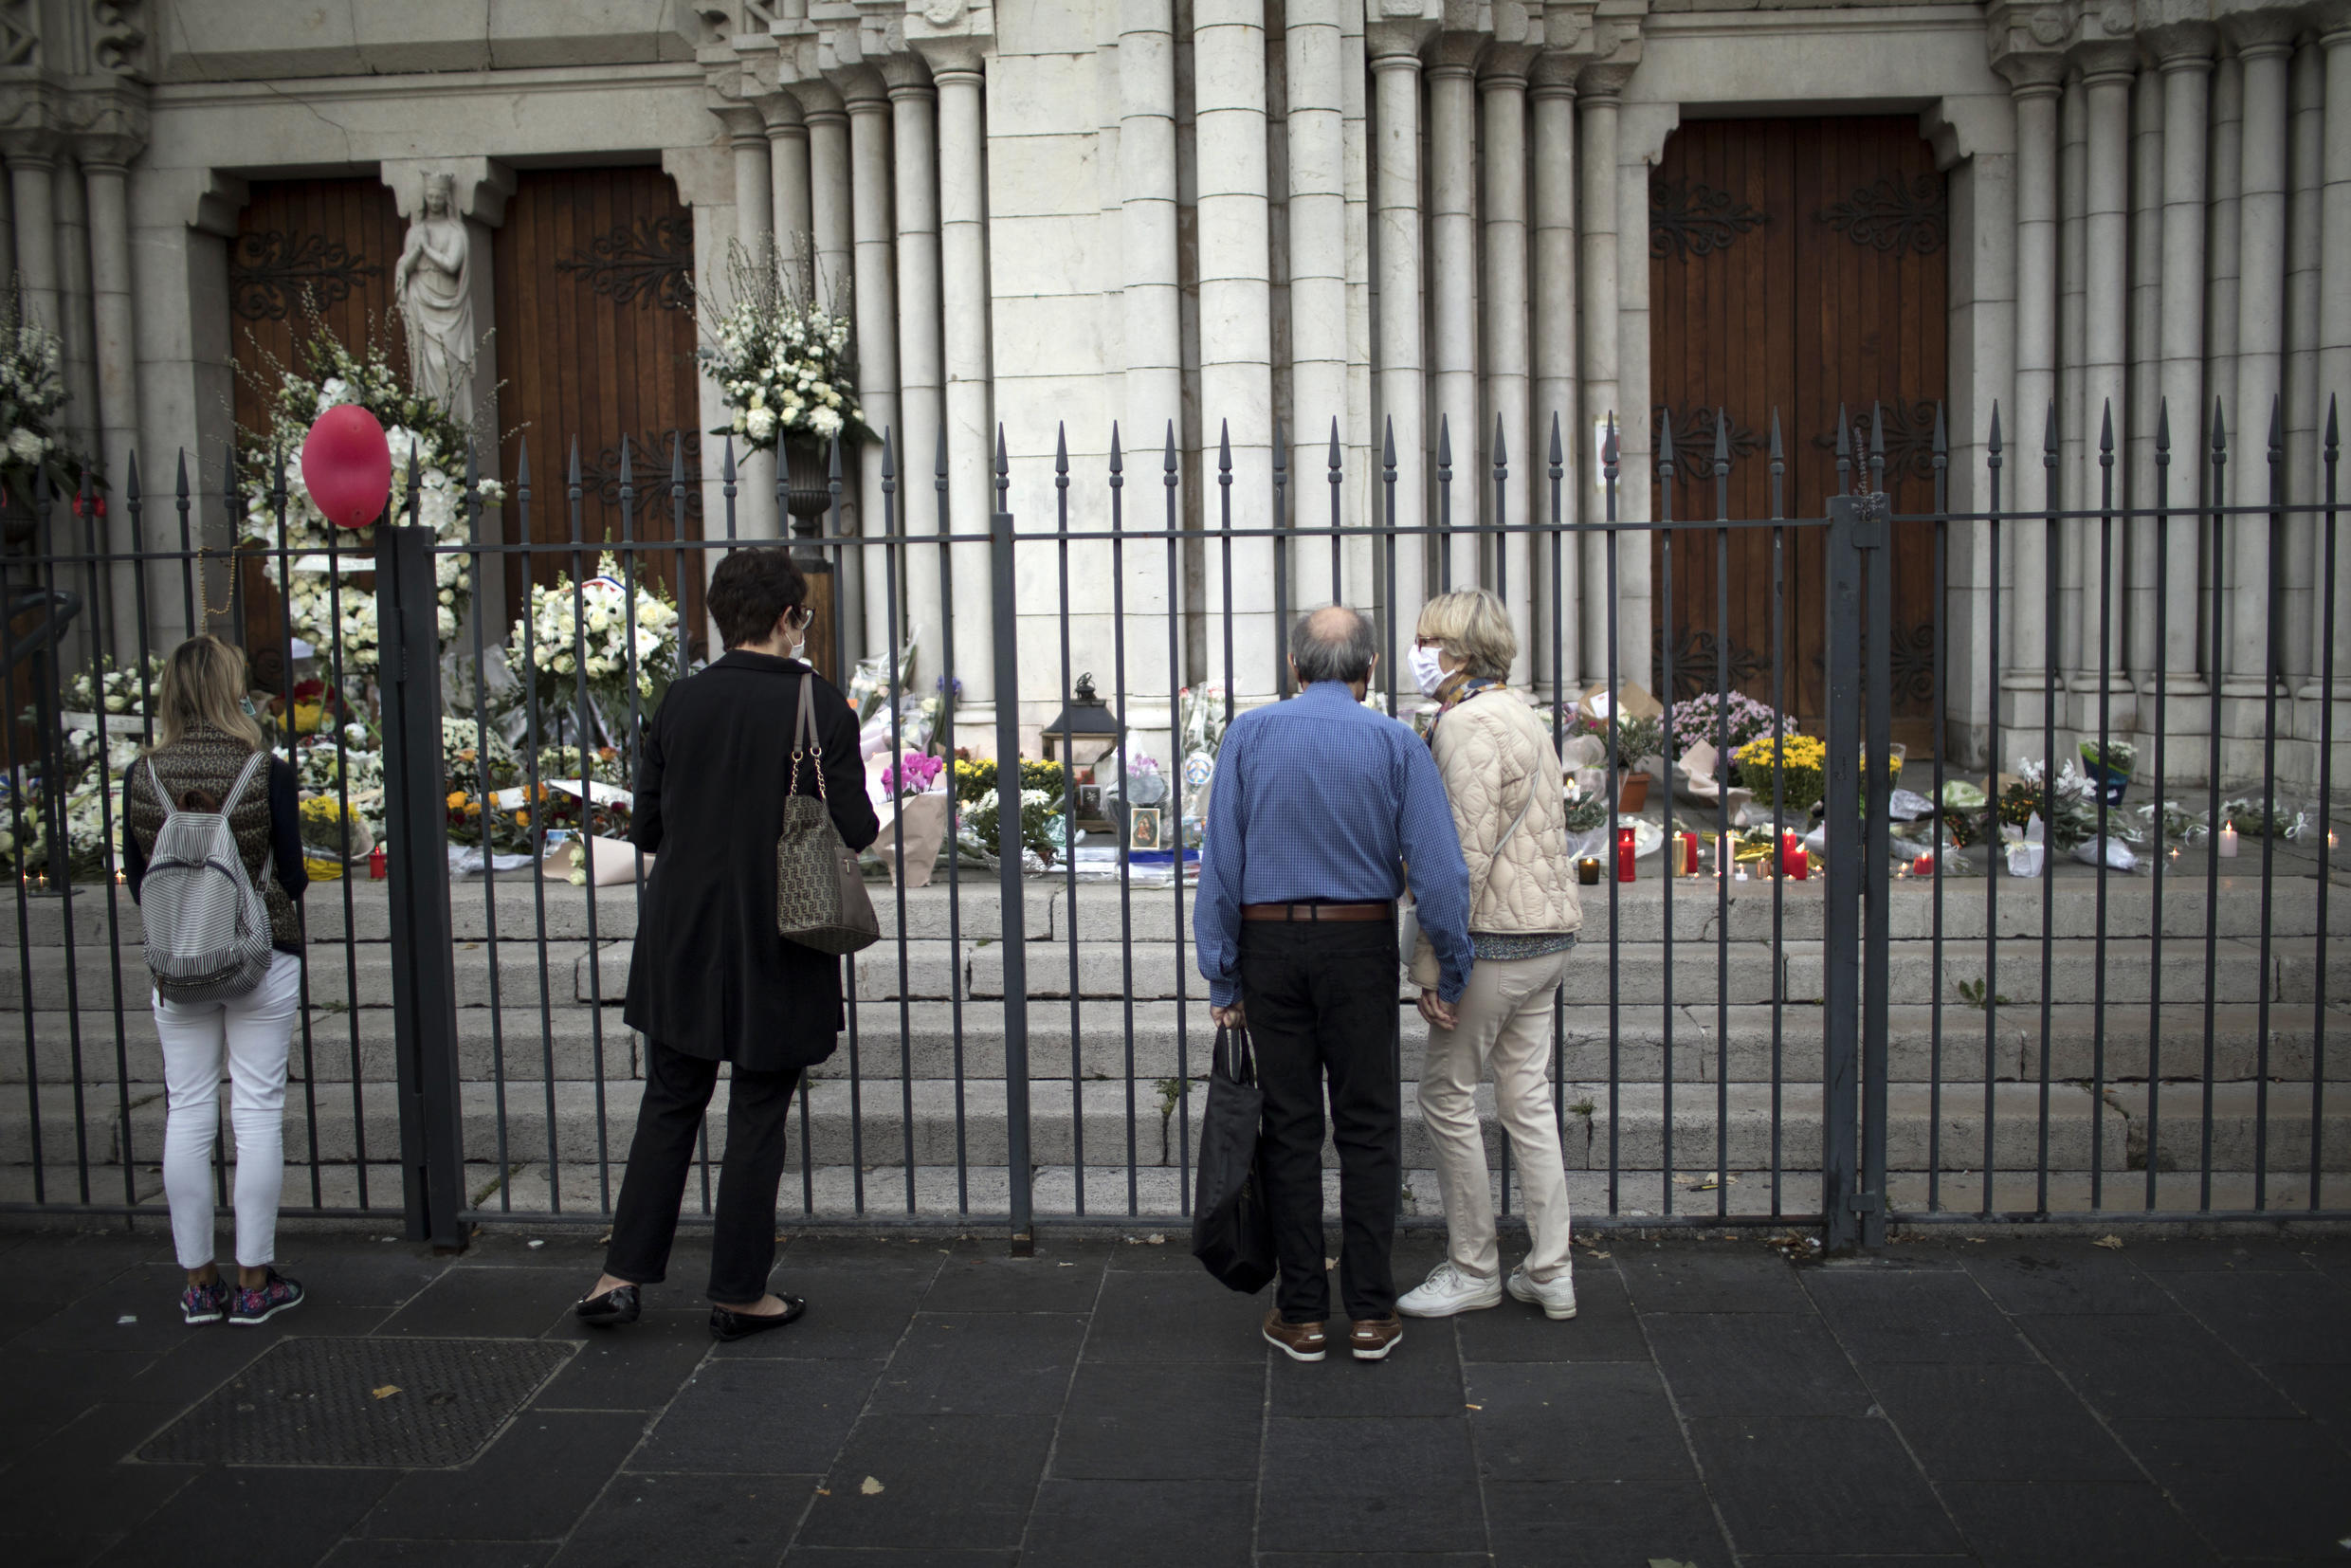 People pay respect to the victims in front of the Notre Dame church in Nice, France, Friday, Oct. 30, 2020. A new suspect is in custody in the investigation into a gruesome attack by a Tunisian man who killed three people in a French church. France heightened its security alert amid religious and geopolitical tensions around cartoons mocking the Muslim prophet.